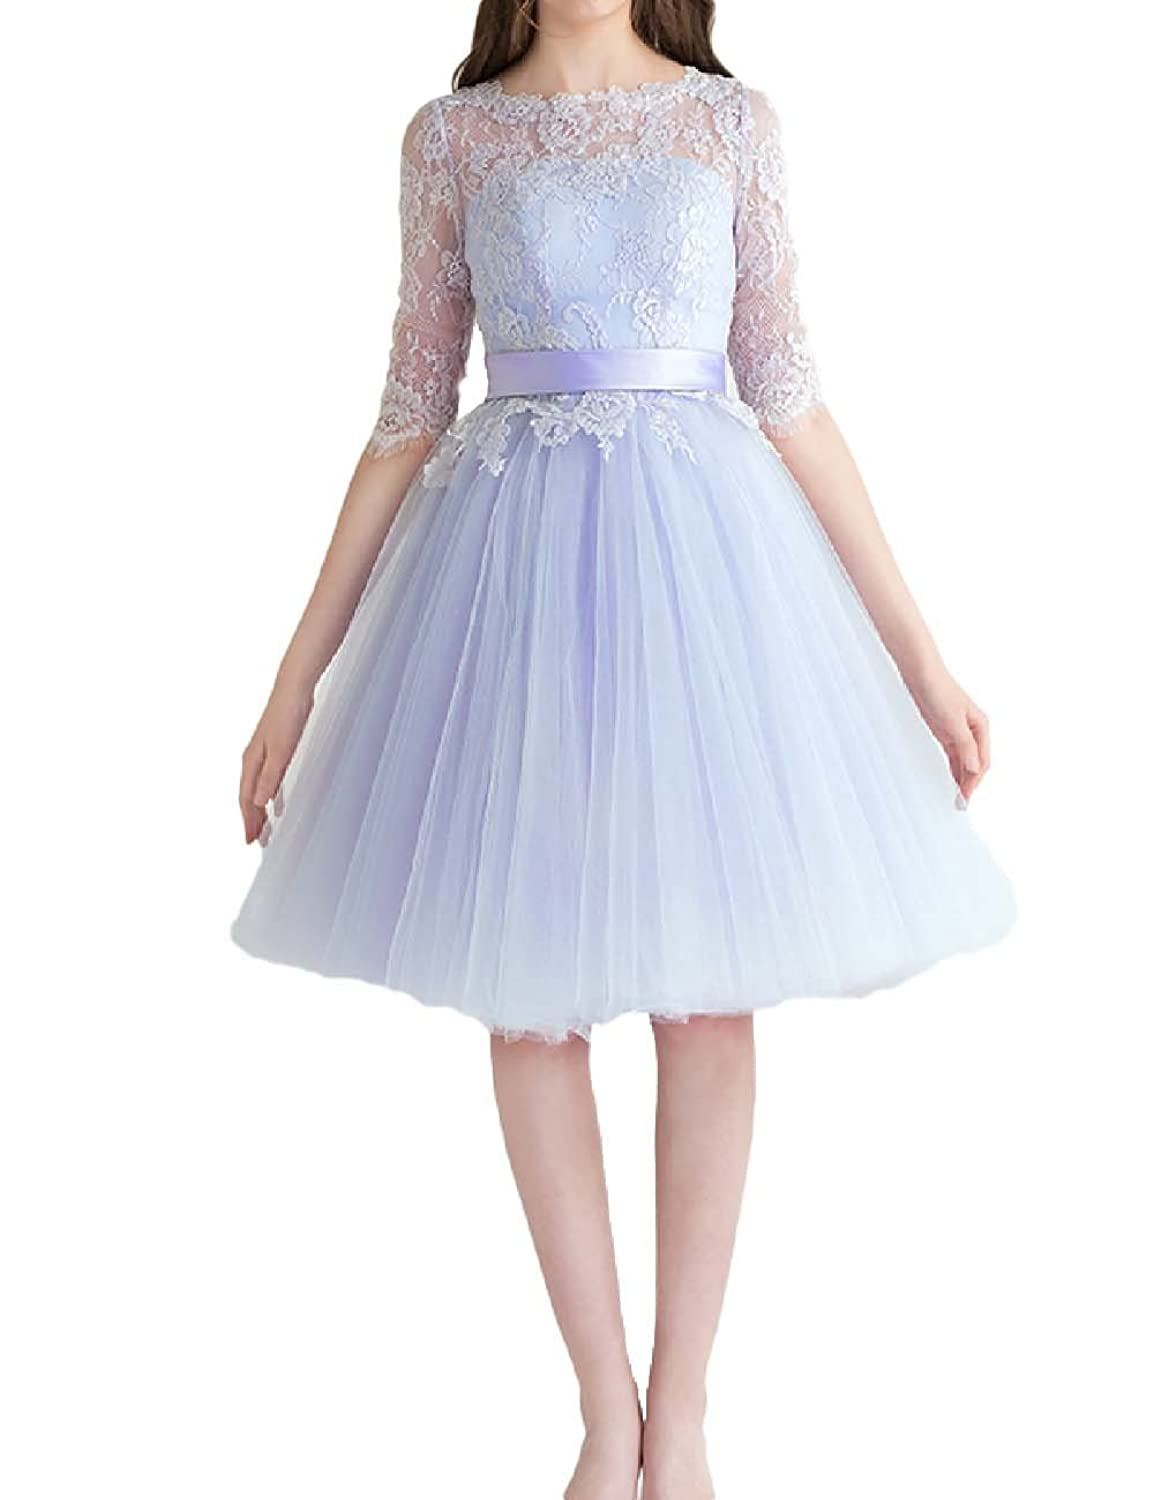 Favors Dress Women's Half Sleeves Short Homecoming Lace Cocktail Prom Dress WP24